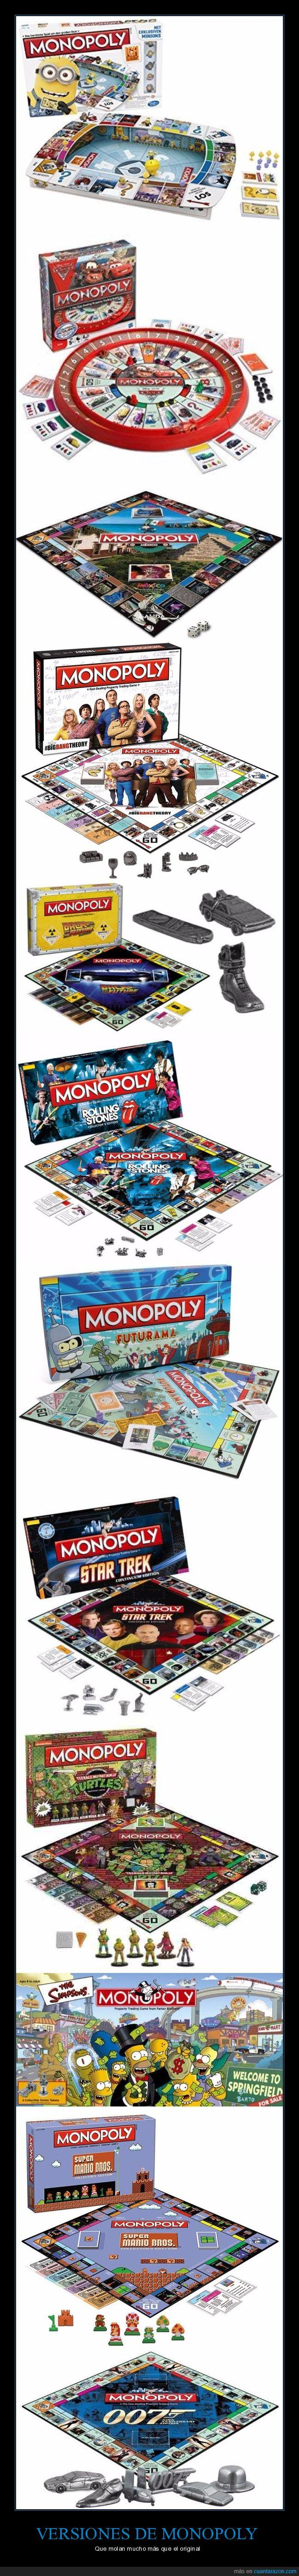 monopoly,original,versiones